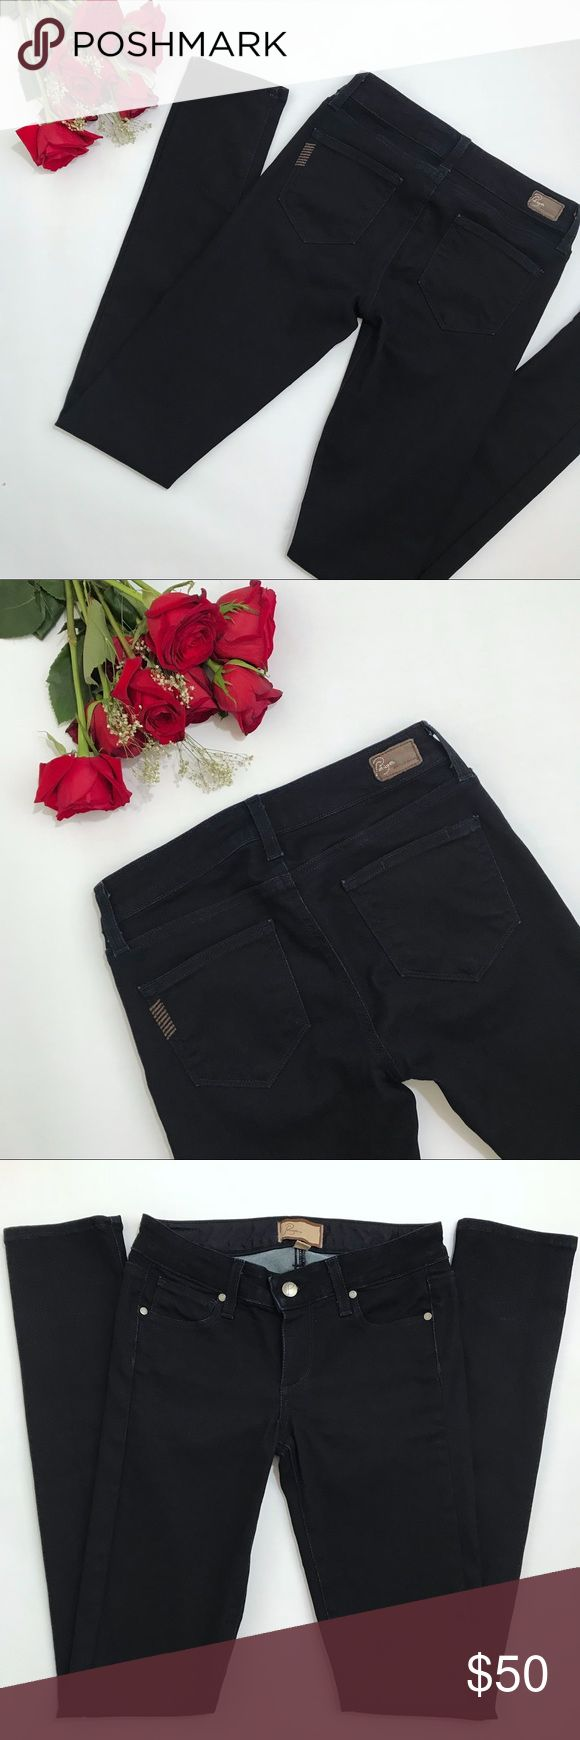 """Paige Dark Wash Peg Skinny Jeans Size 25 These are a pair of the 'Peg Skinny' jeans from Paige Jeans. These jeans are a super dark wash deep navy color that is almost black. Size 25 and in excellent condition! Please feel free to ask any questions.   Approximate measurements: (taken when laid flat) Waist 14"""" Hips 15.75"""" Front rise 7"""" Inseam 34"""" Full length 41.5"""" Paige Jeans Jeans Skinny"""